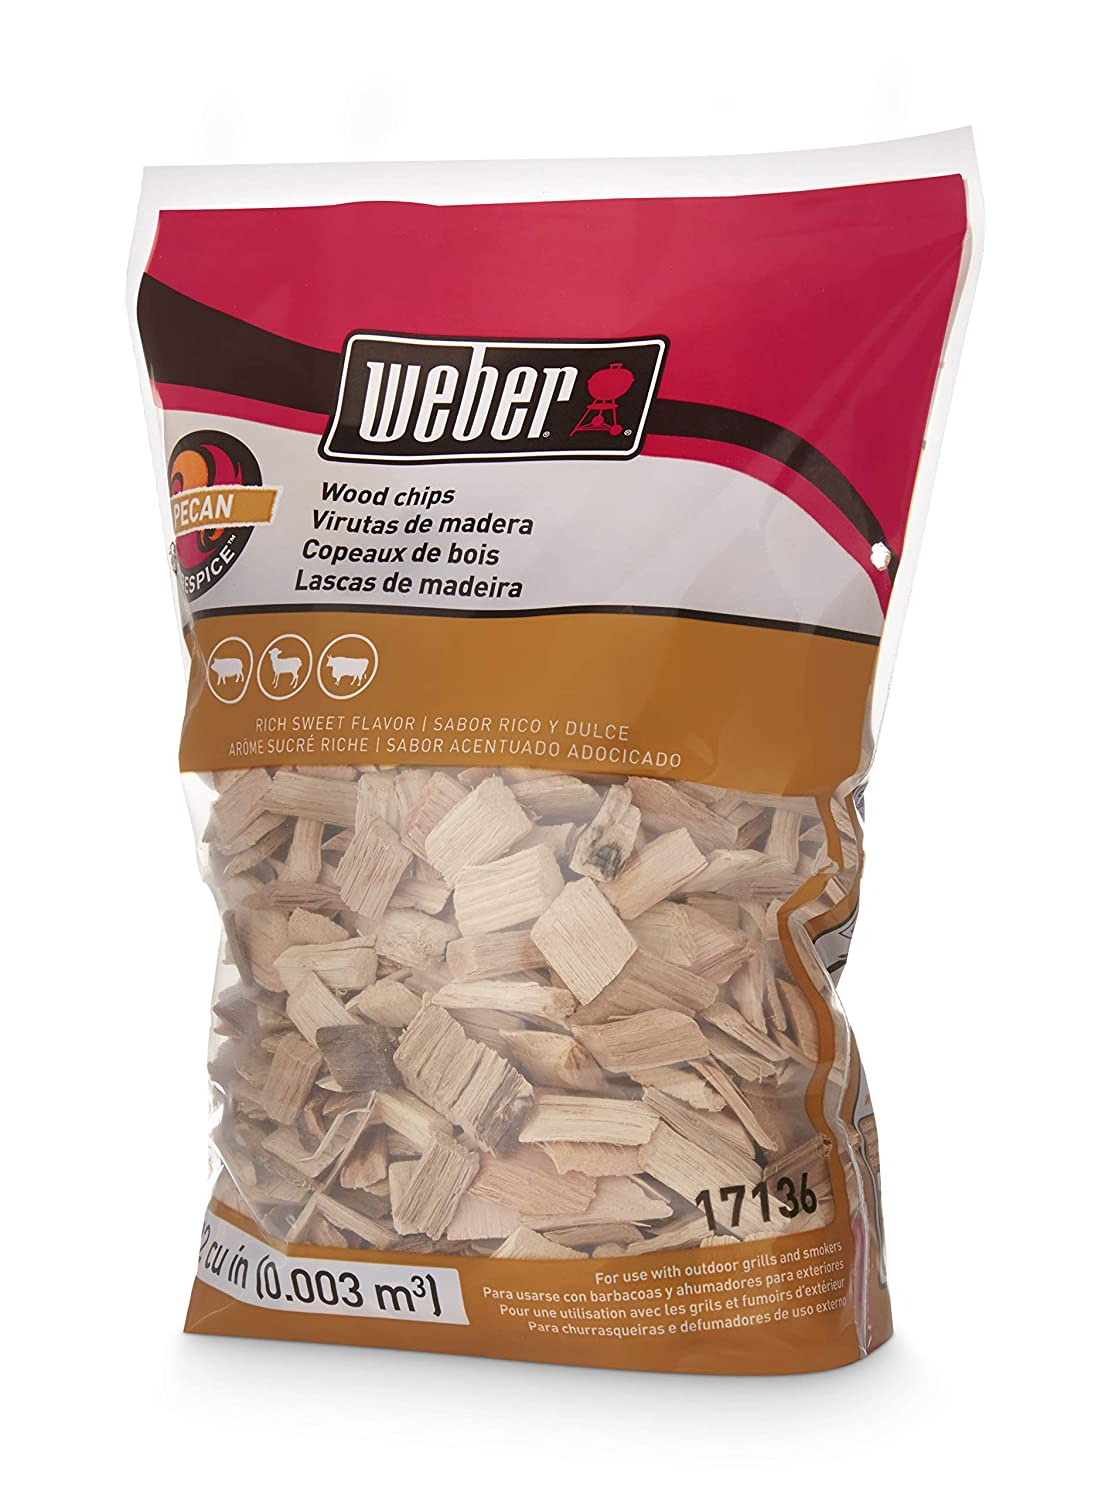 Weber Cubic Meter Stephen Products 17136 Pecan Wood Chips, 192 cu. in. (0.003 cubi, 2 lb